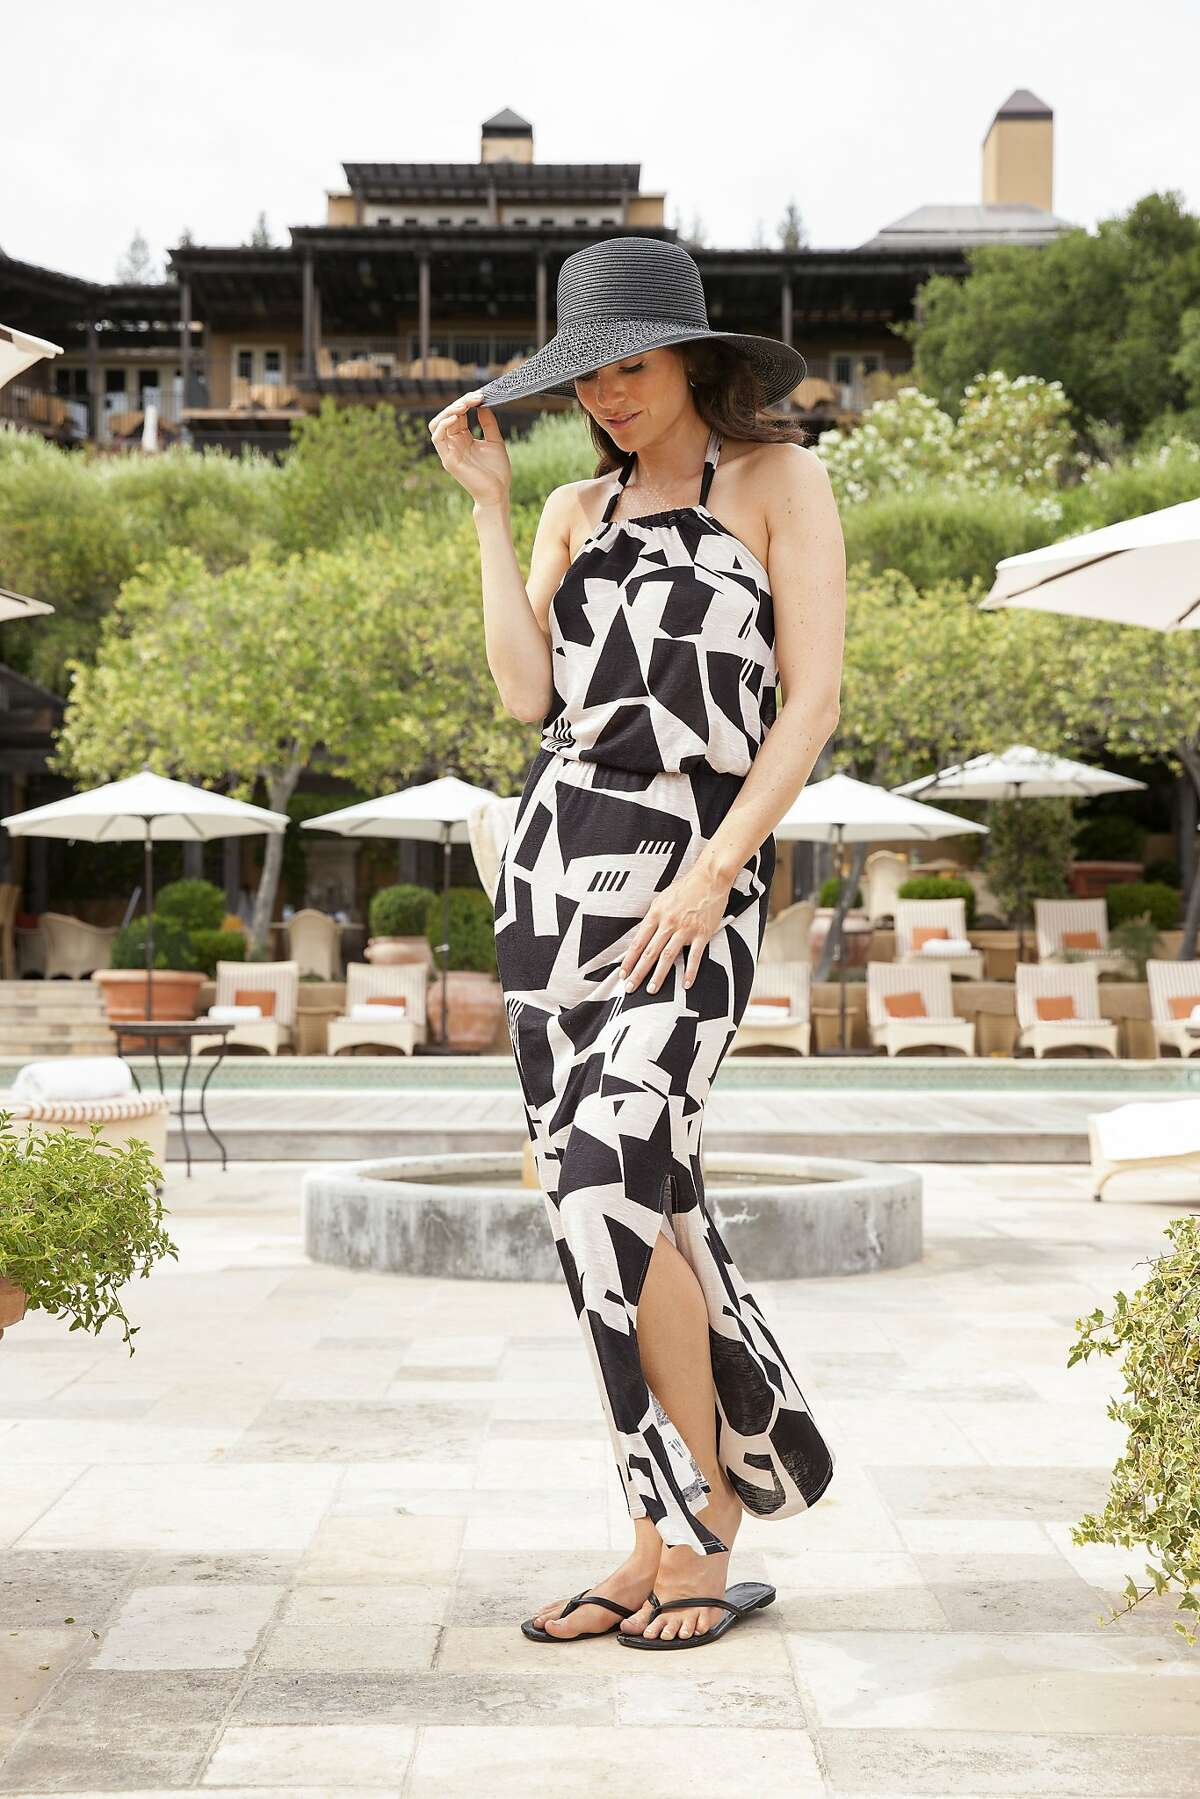 Vacay is a new resort capsule collection line made in San Francisco. Pictured is the MAX dress from the Fiji collection, at Auberge du Soleil in Napa.